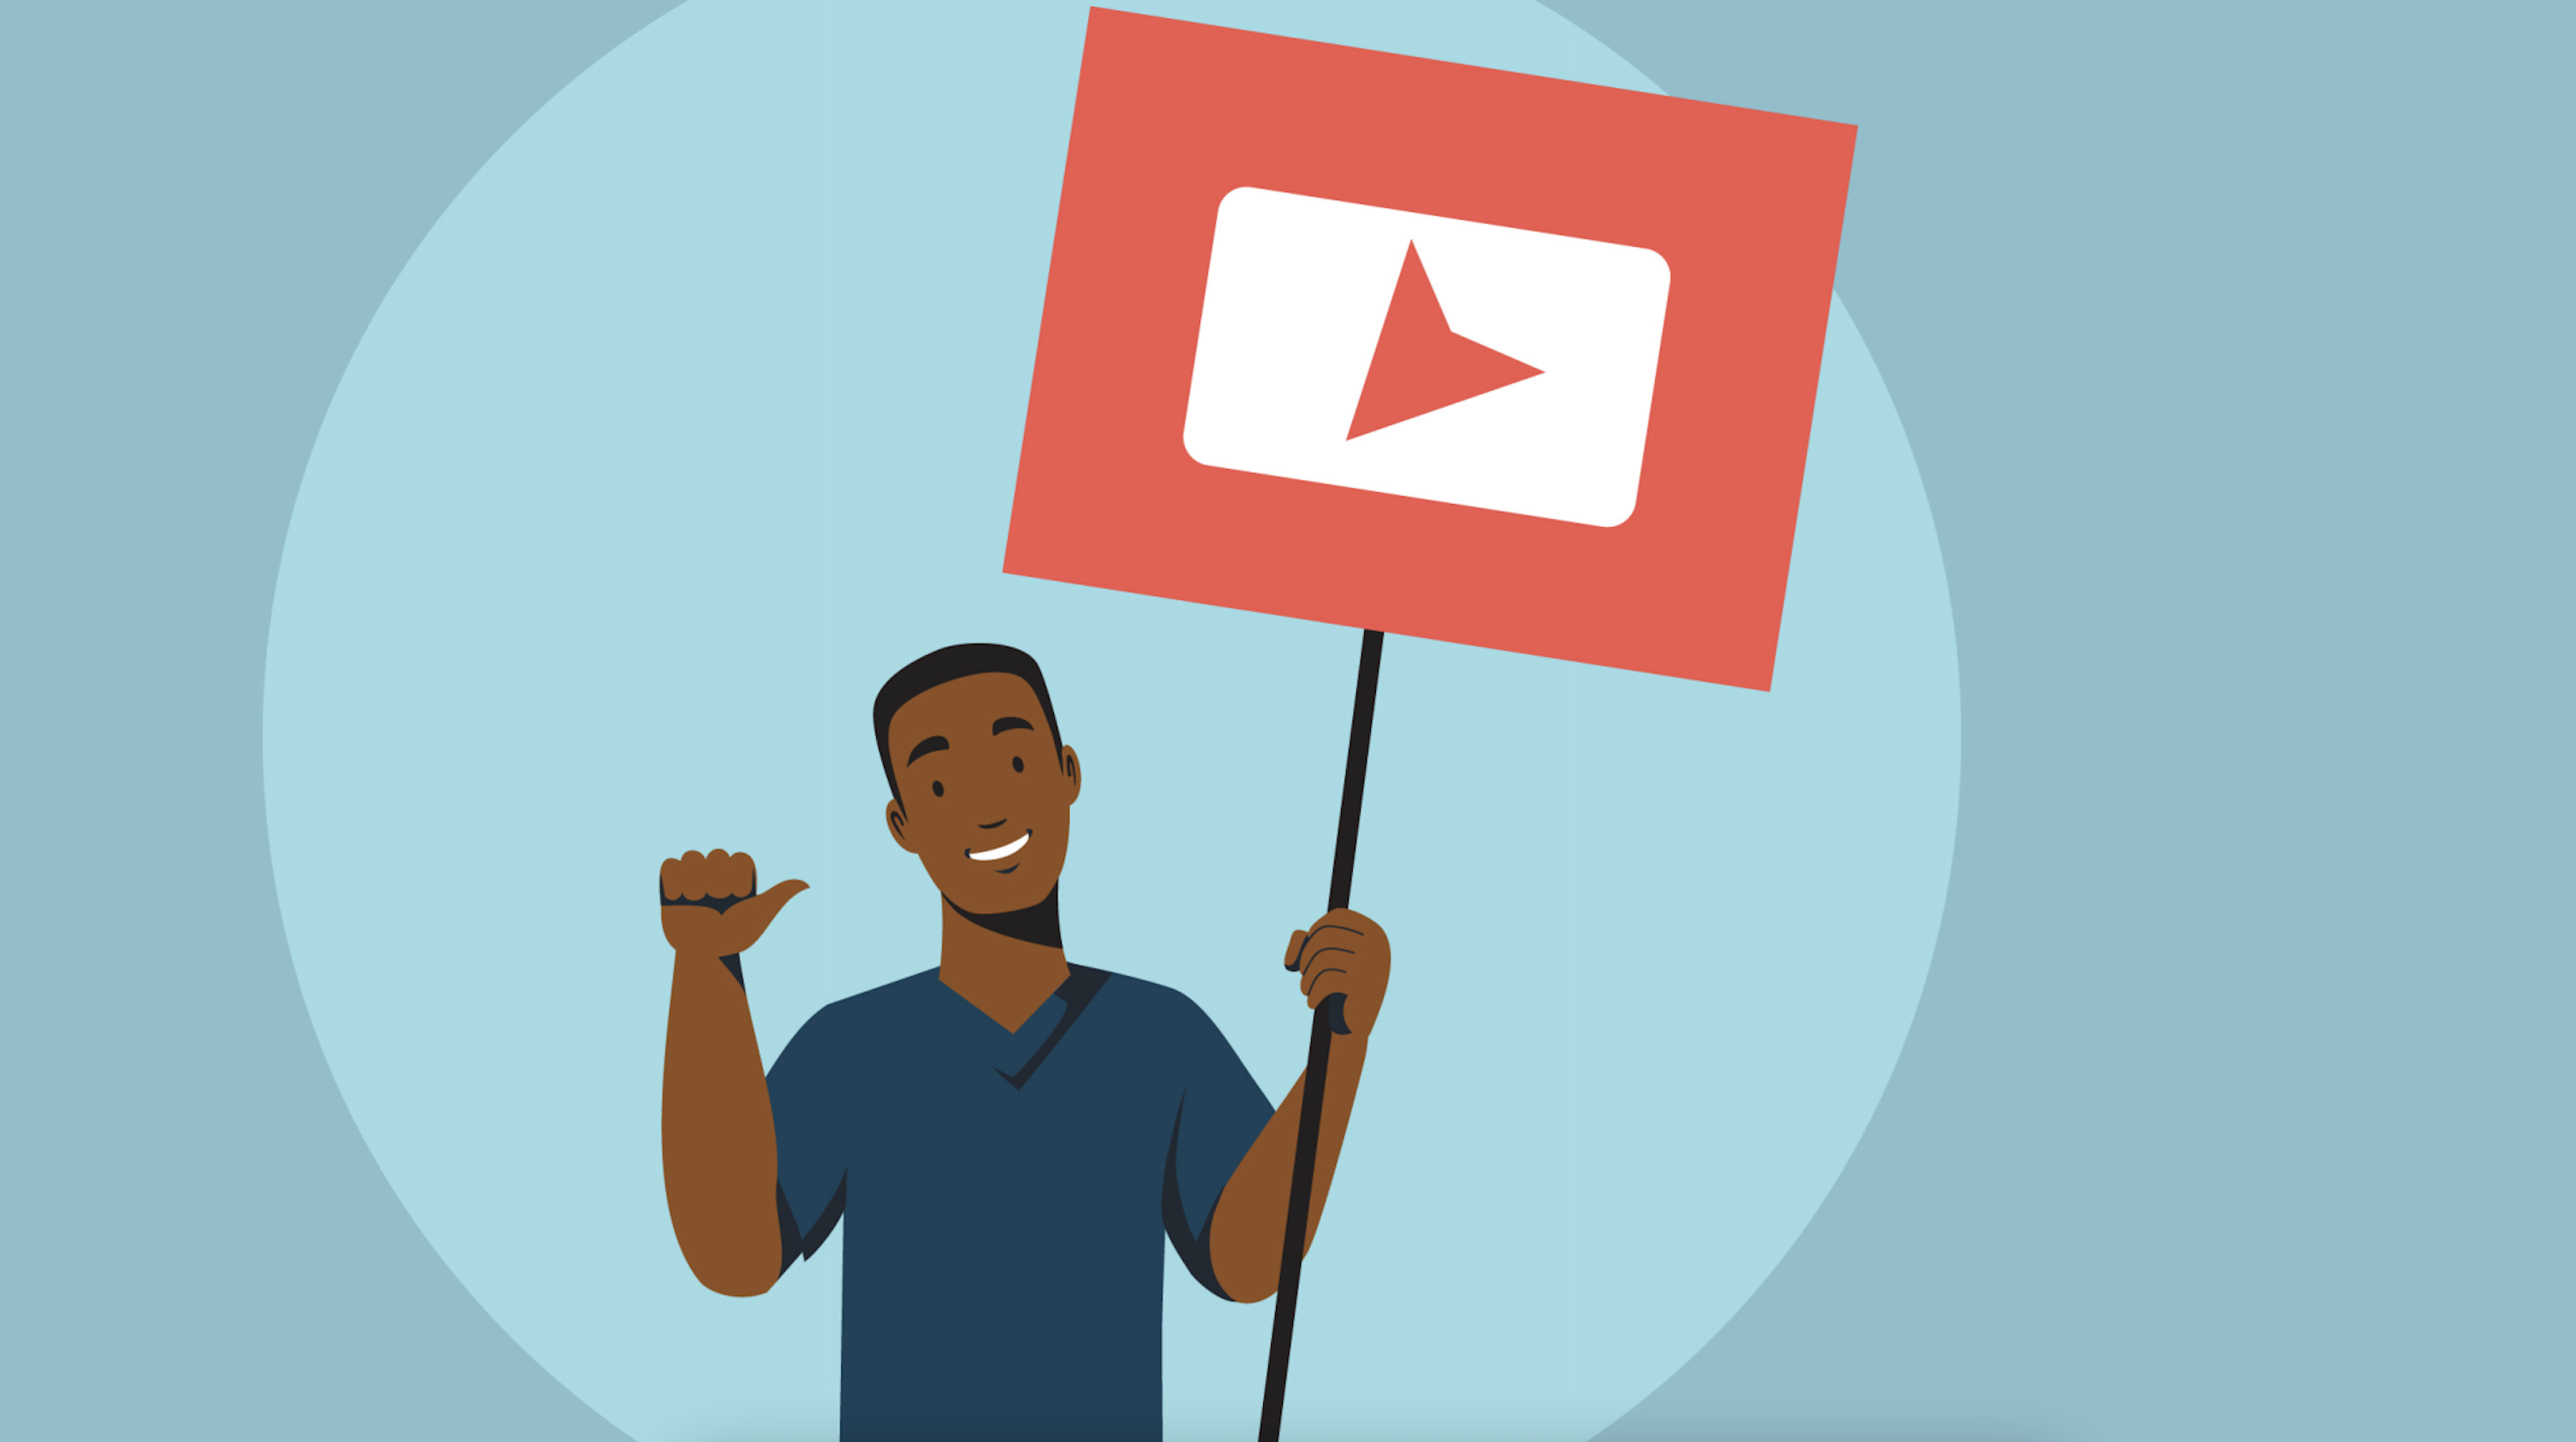 Illustration of a person holding a YouTube sign